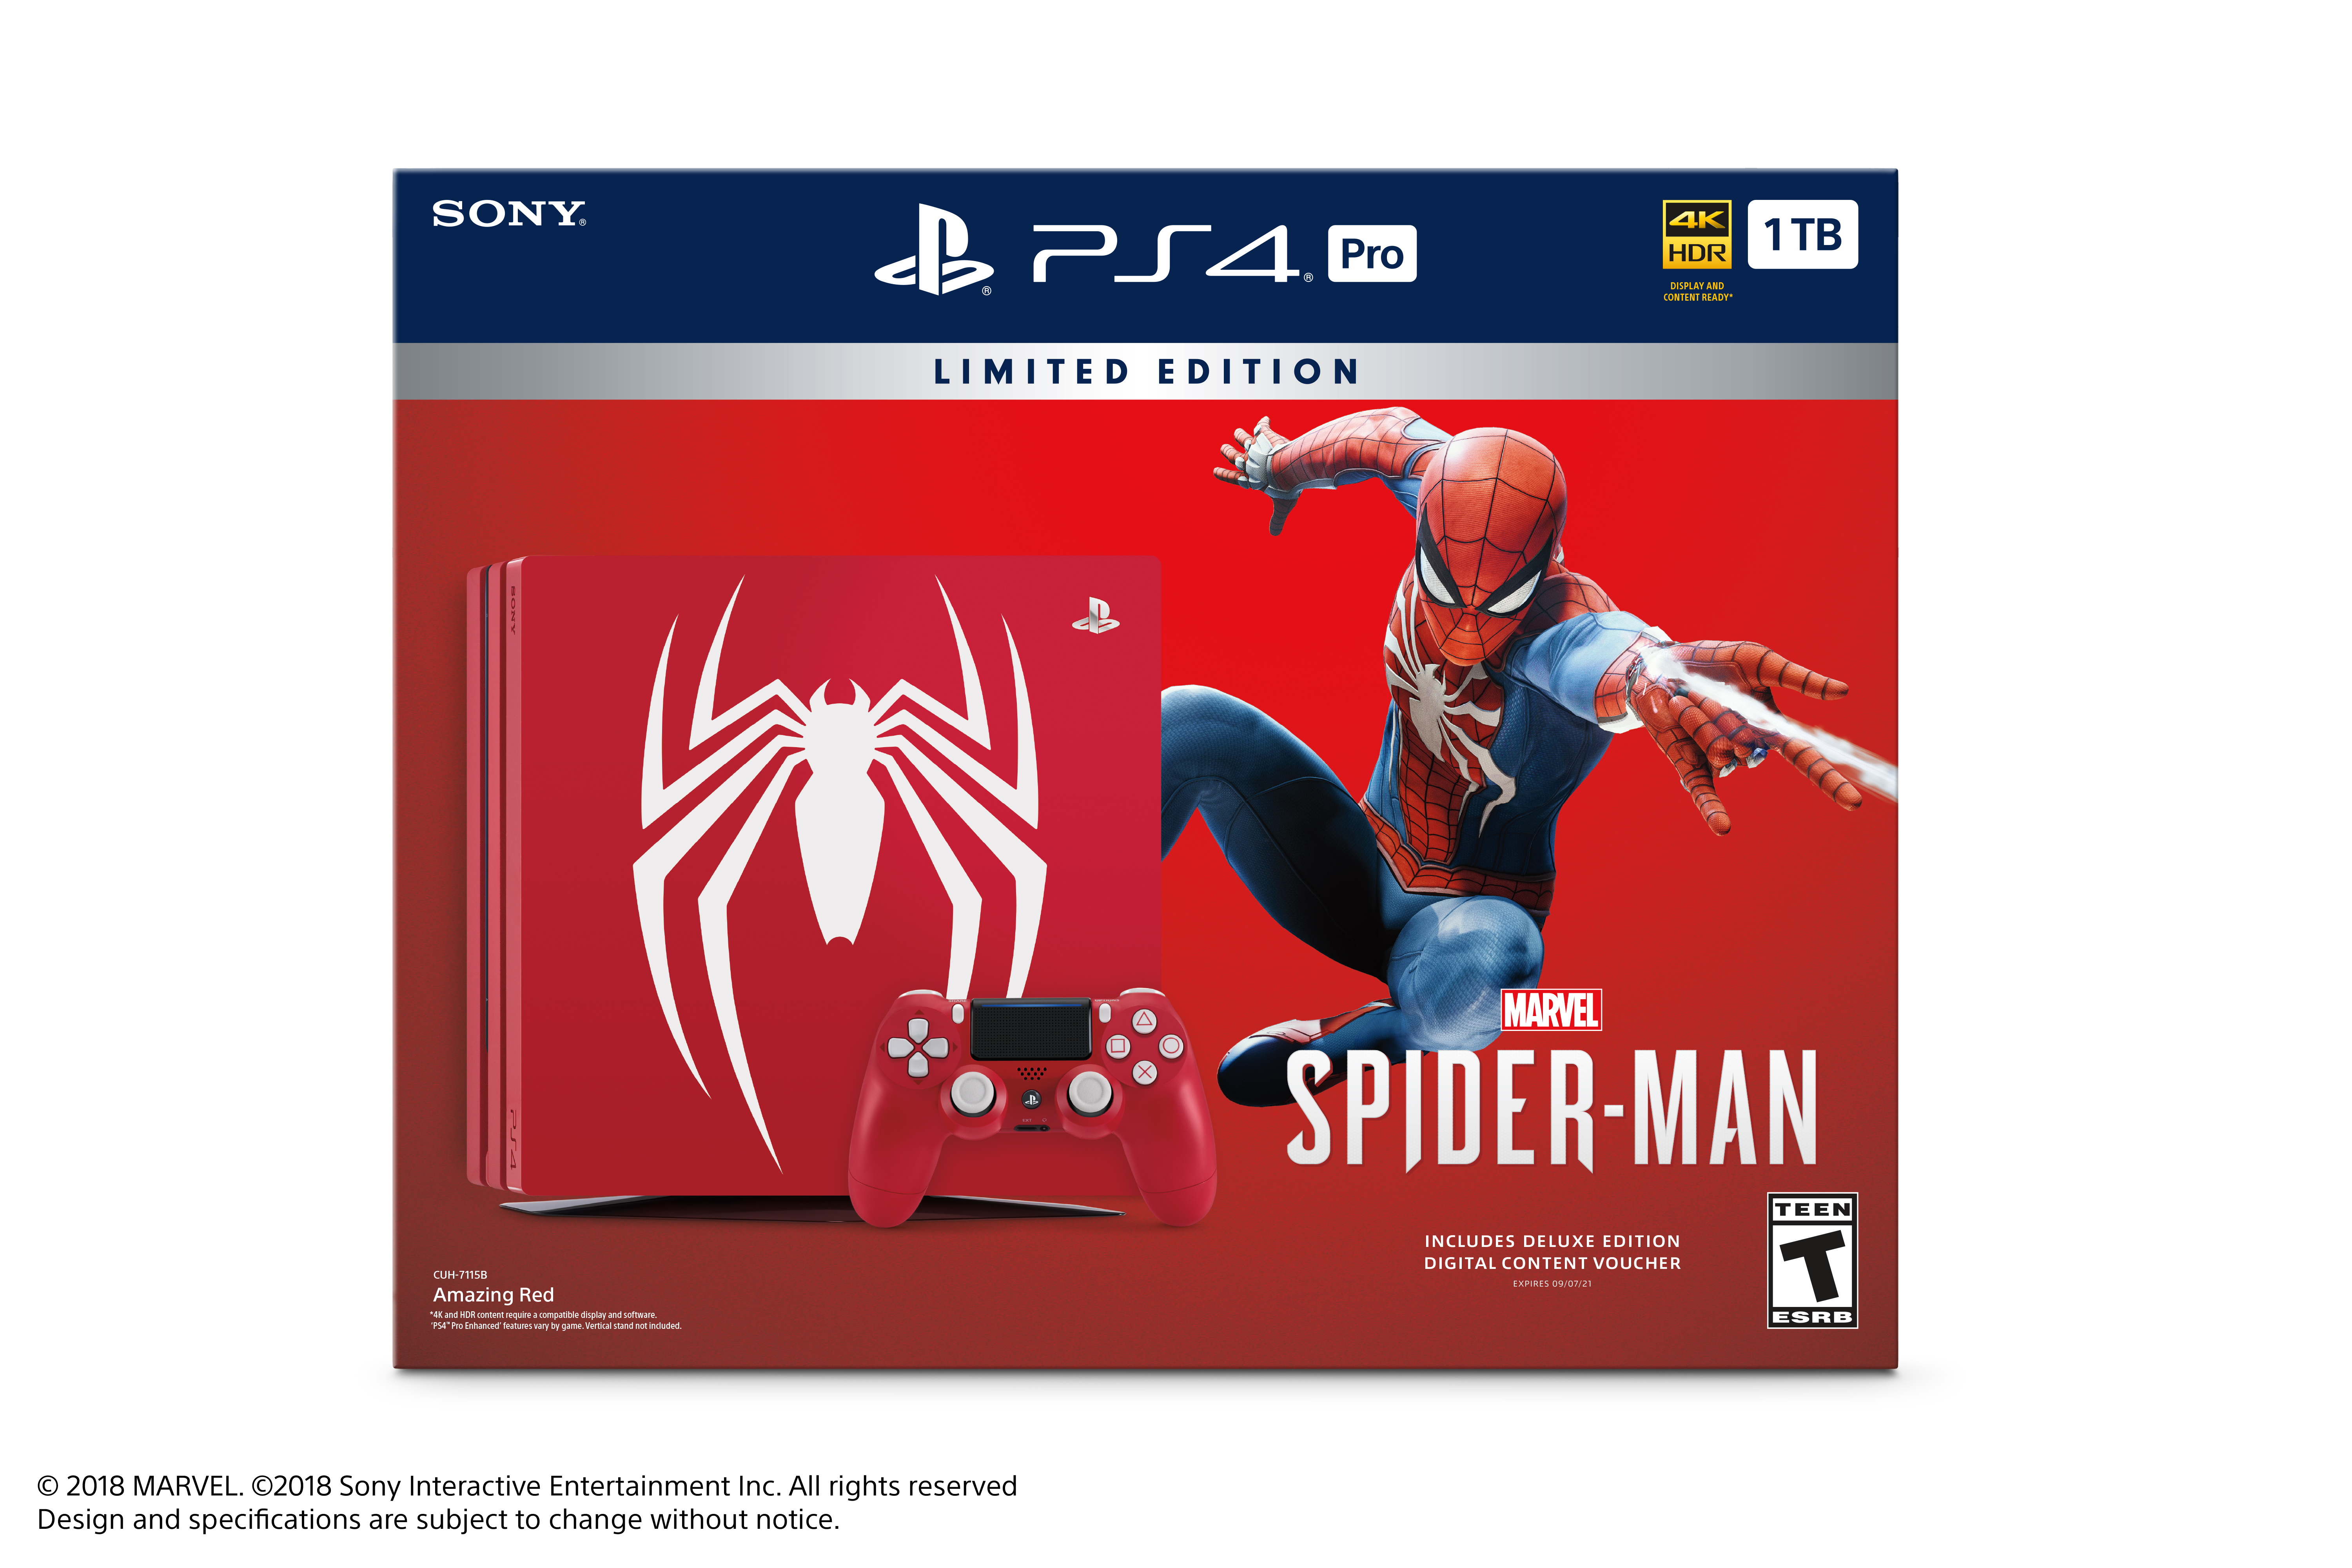 Sony Limited Edition Marvel's Spider-Man PS4 Pro 1TB Bundle